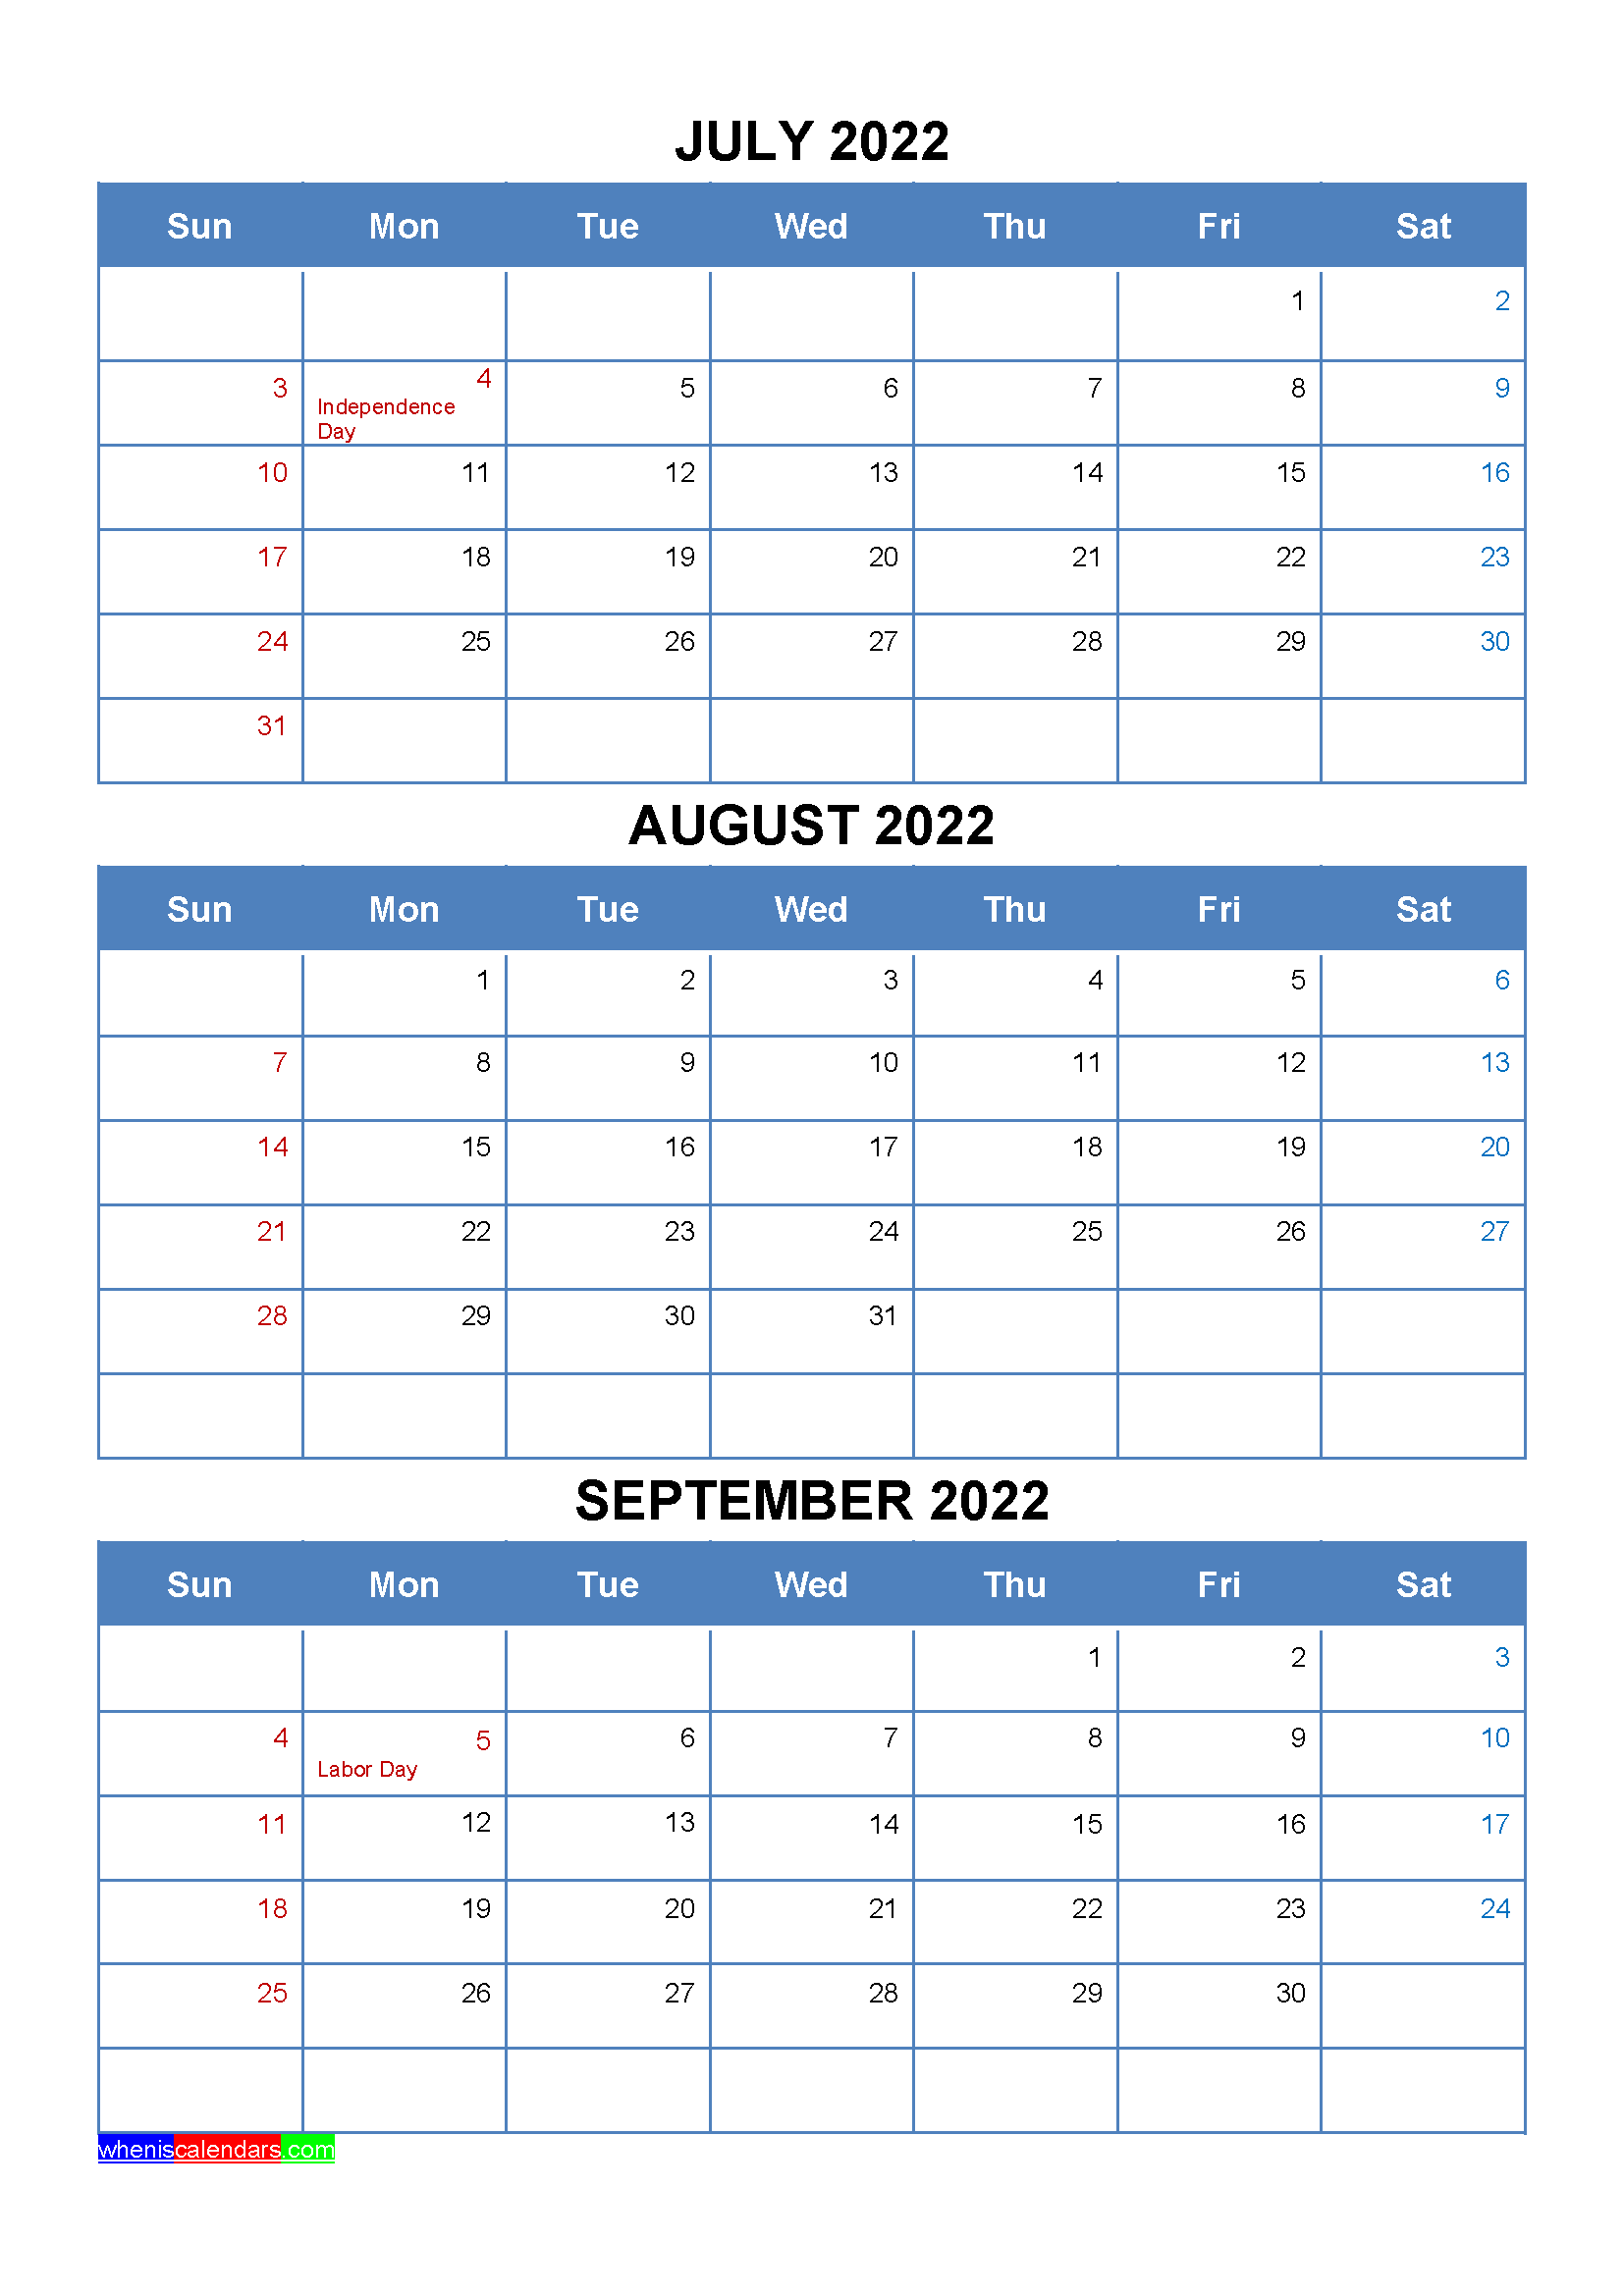 Moon Calendar September 2022.July August September 2022 Calendar With Holidays Four Quarters January February March Printable Calendar July April May